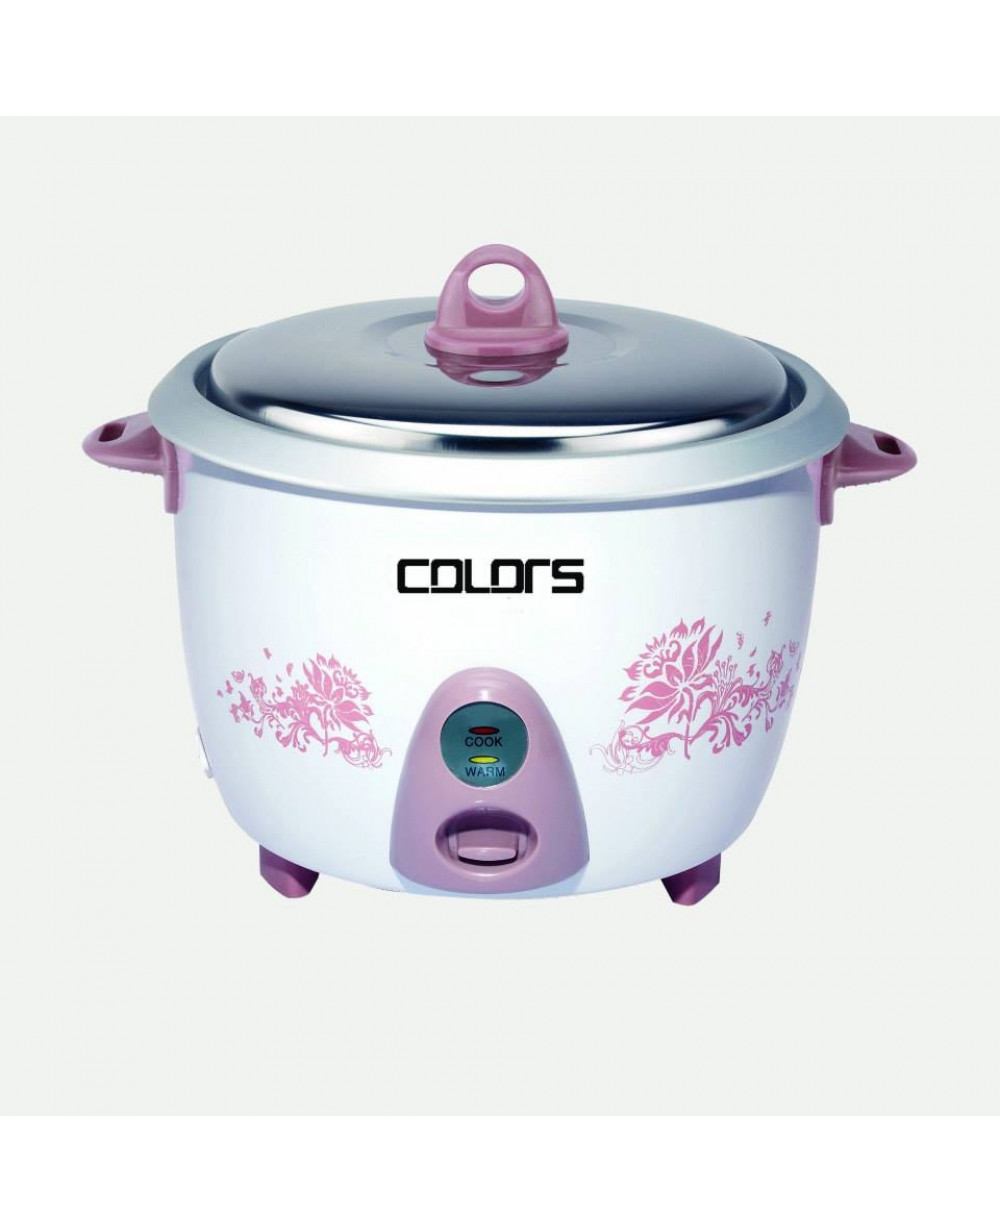 Colors Rice Cooker CL-RC100 (Normal)